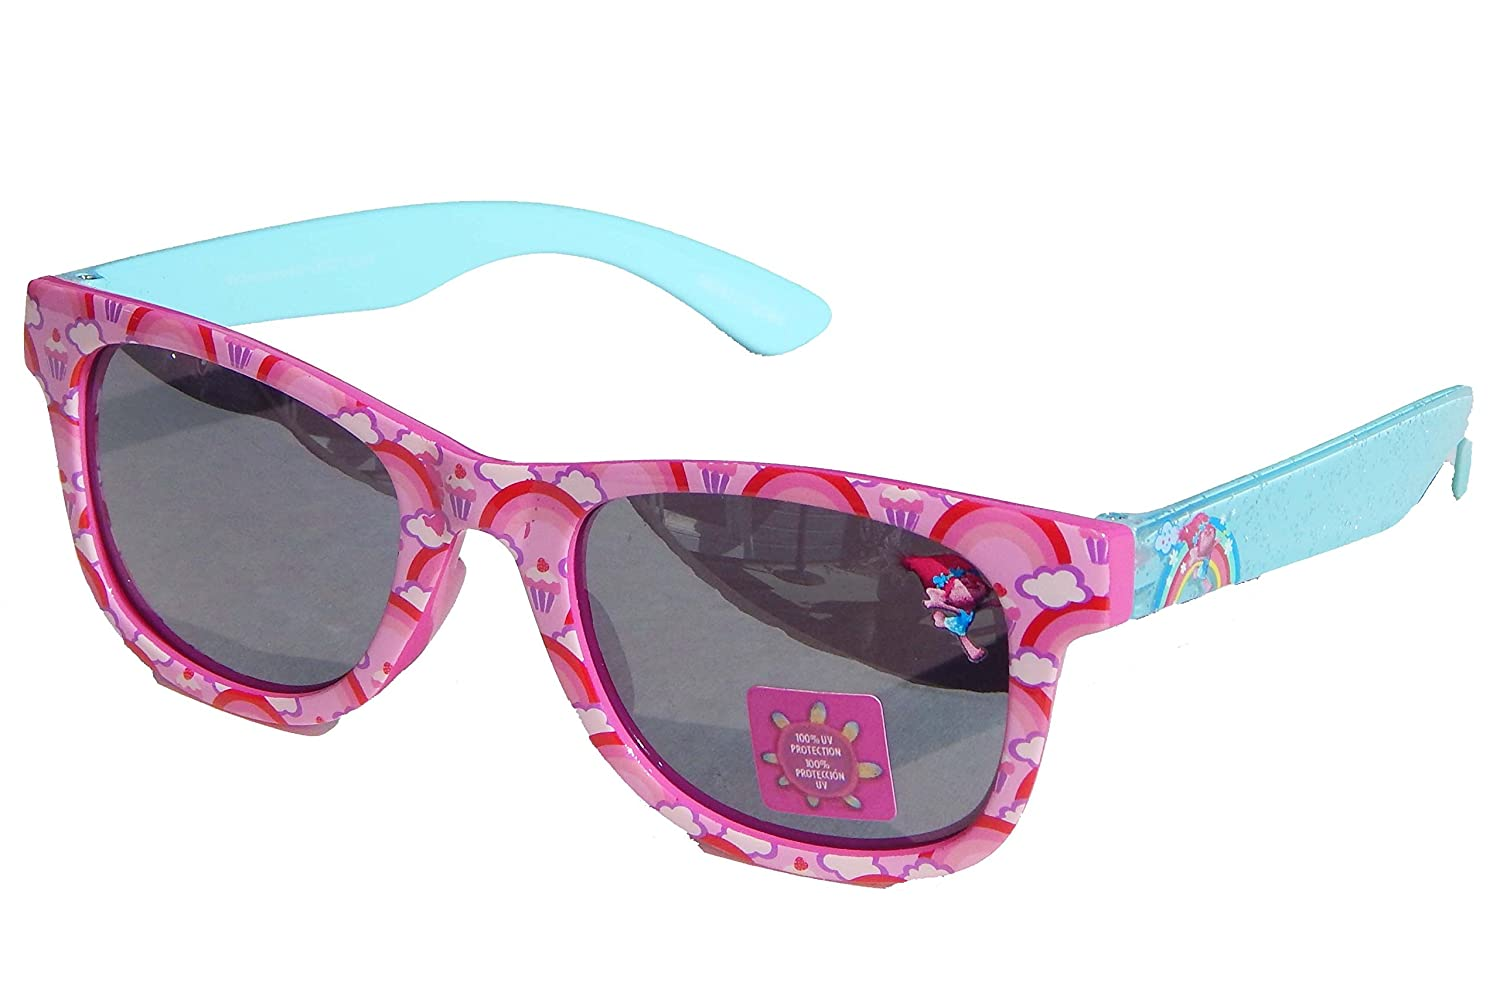 TROLLS PRINCESS POPPY Girls 100% UV Shatter Resistant Sunglasses